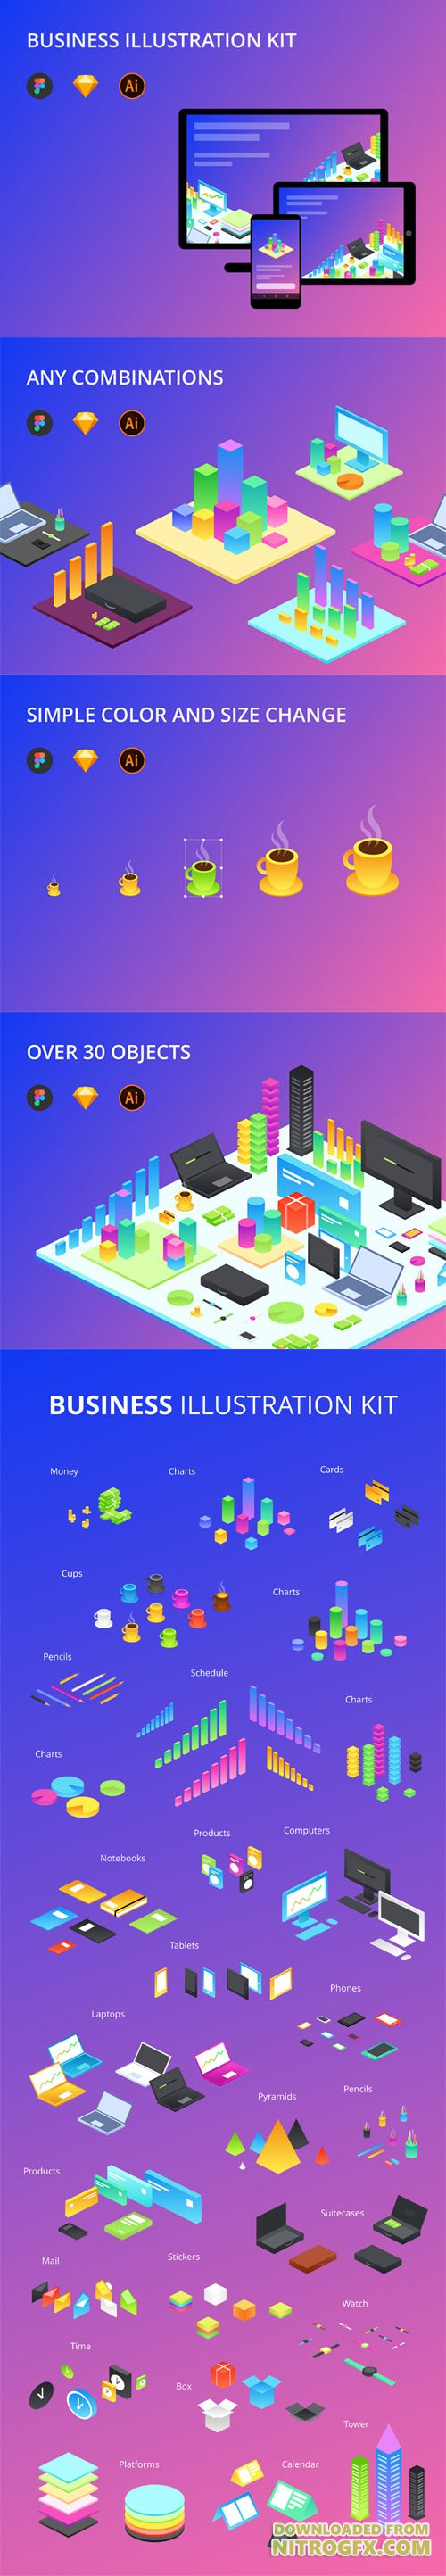 Business Illustration kit - 30 Object Business Illustration kit